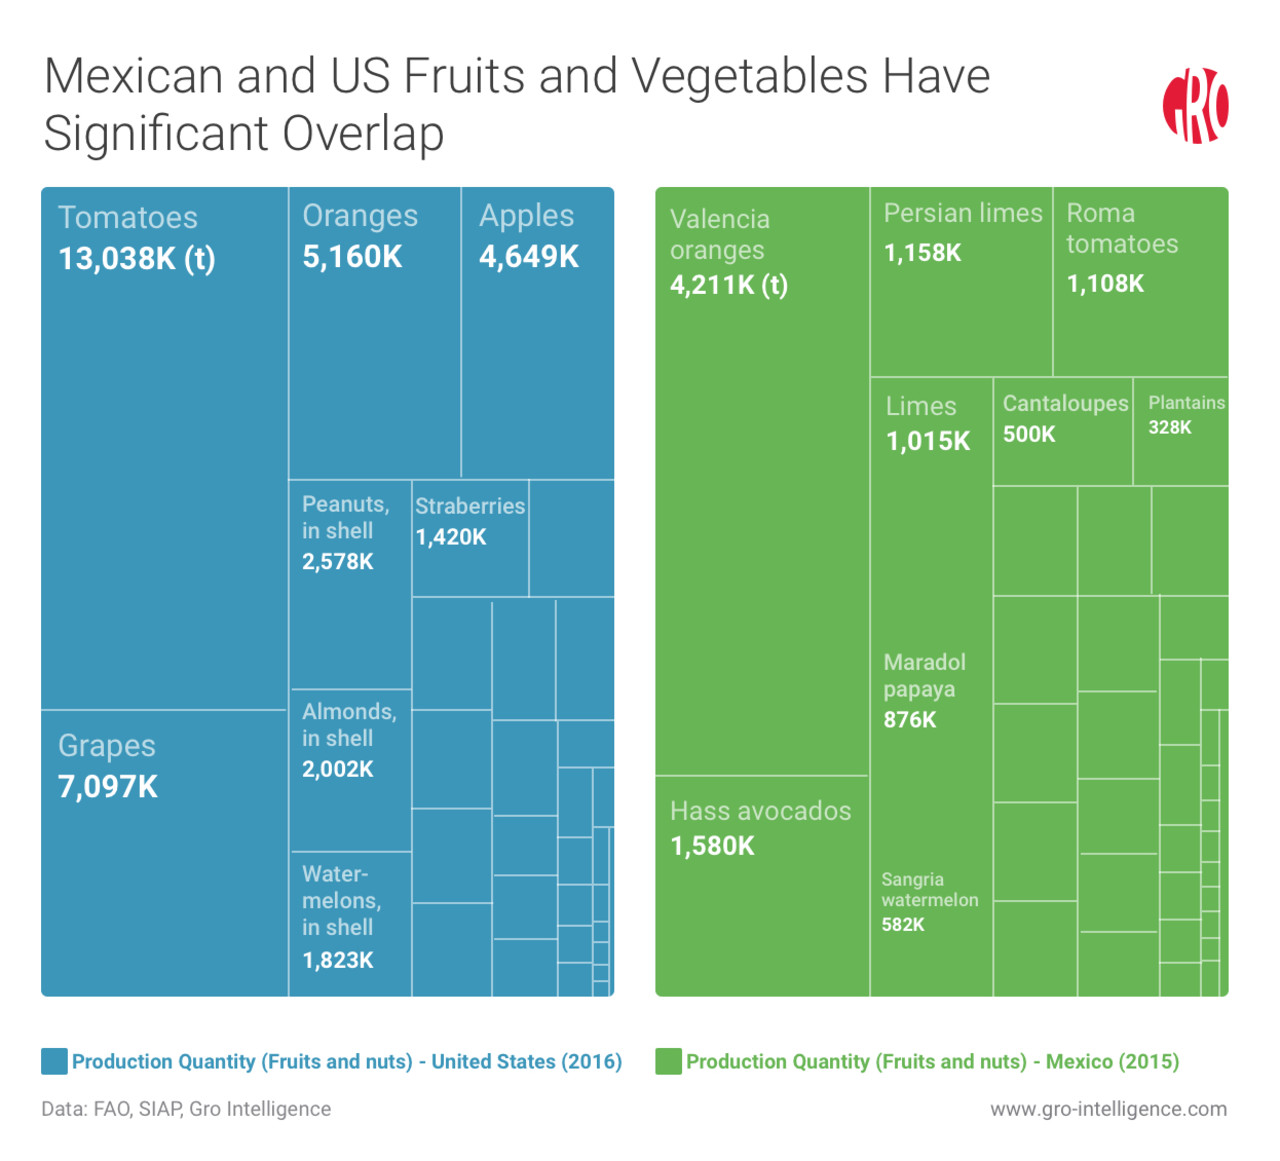 Mexican and US Fruits and Vegetables Have Significant Overlap